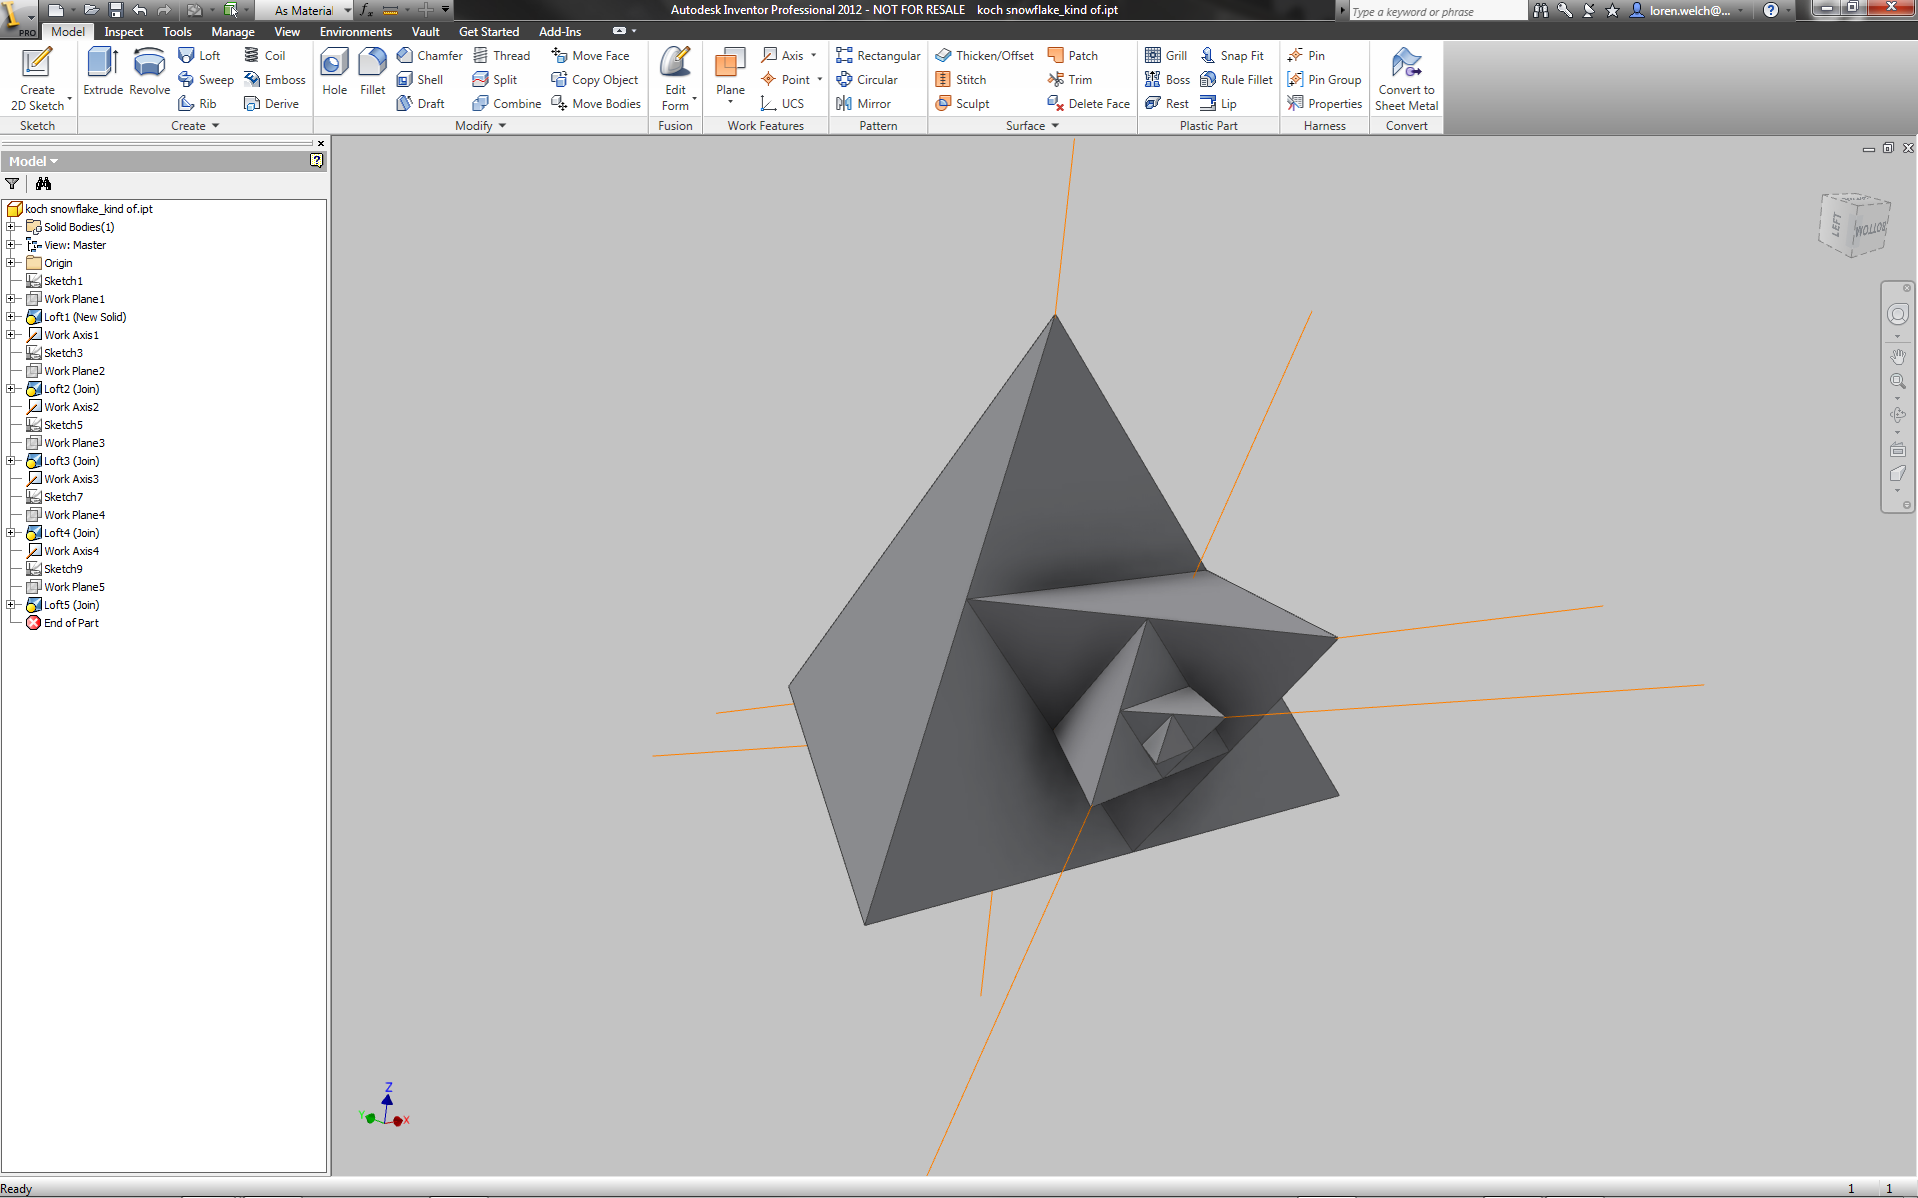 Modeling 3D Fractals with Autodesk Inventor 2012